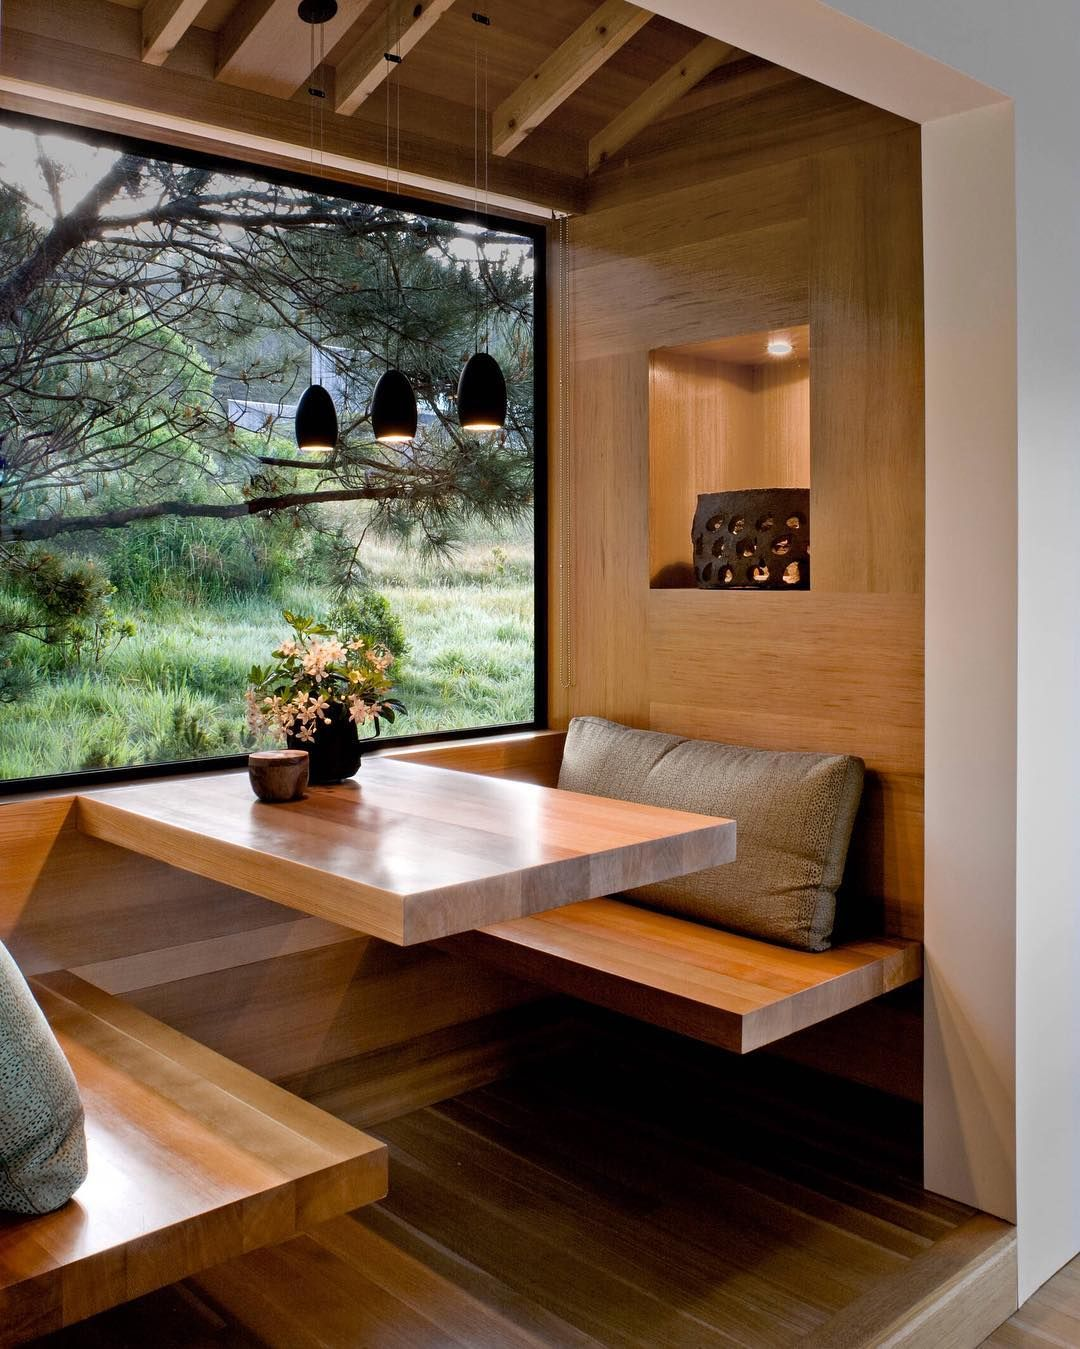 6 inspirational modern japanese interior style ideas you should steal 居心地の良いキッチン スイートホーム 自宅で on kitchen interior japan id=18928